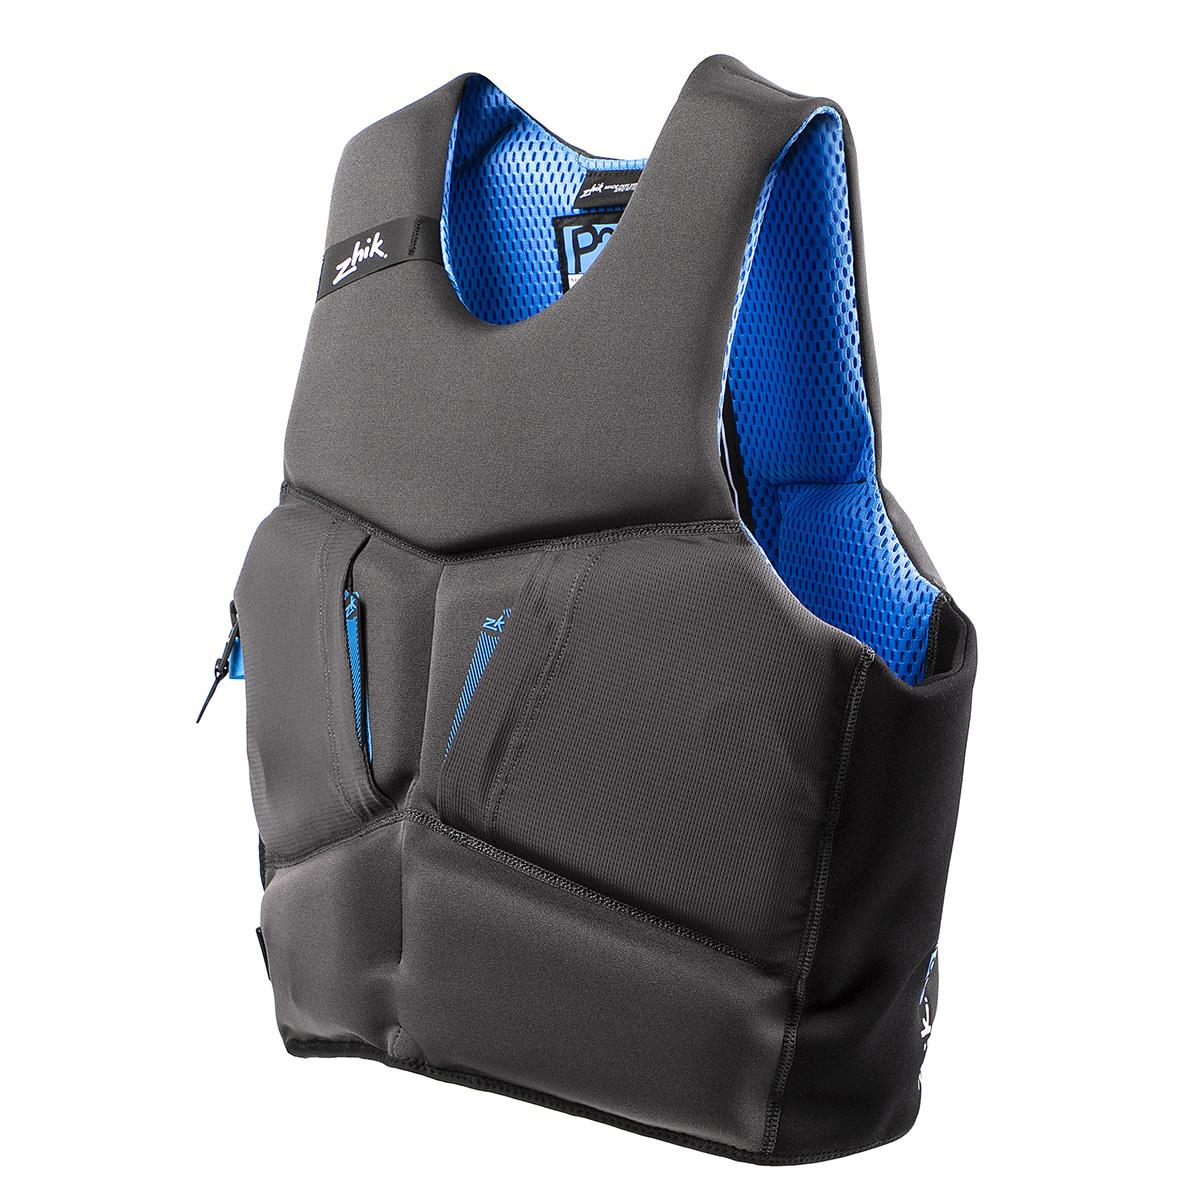 Zhik P2 PFD Buoyancy Aid - Grey/Blue